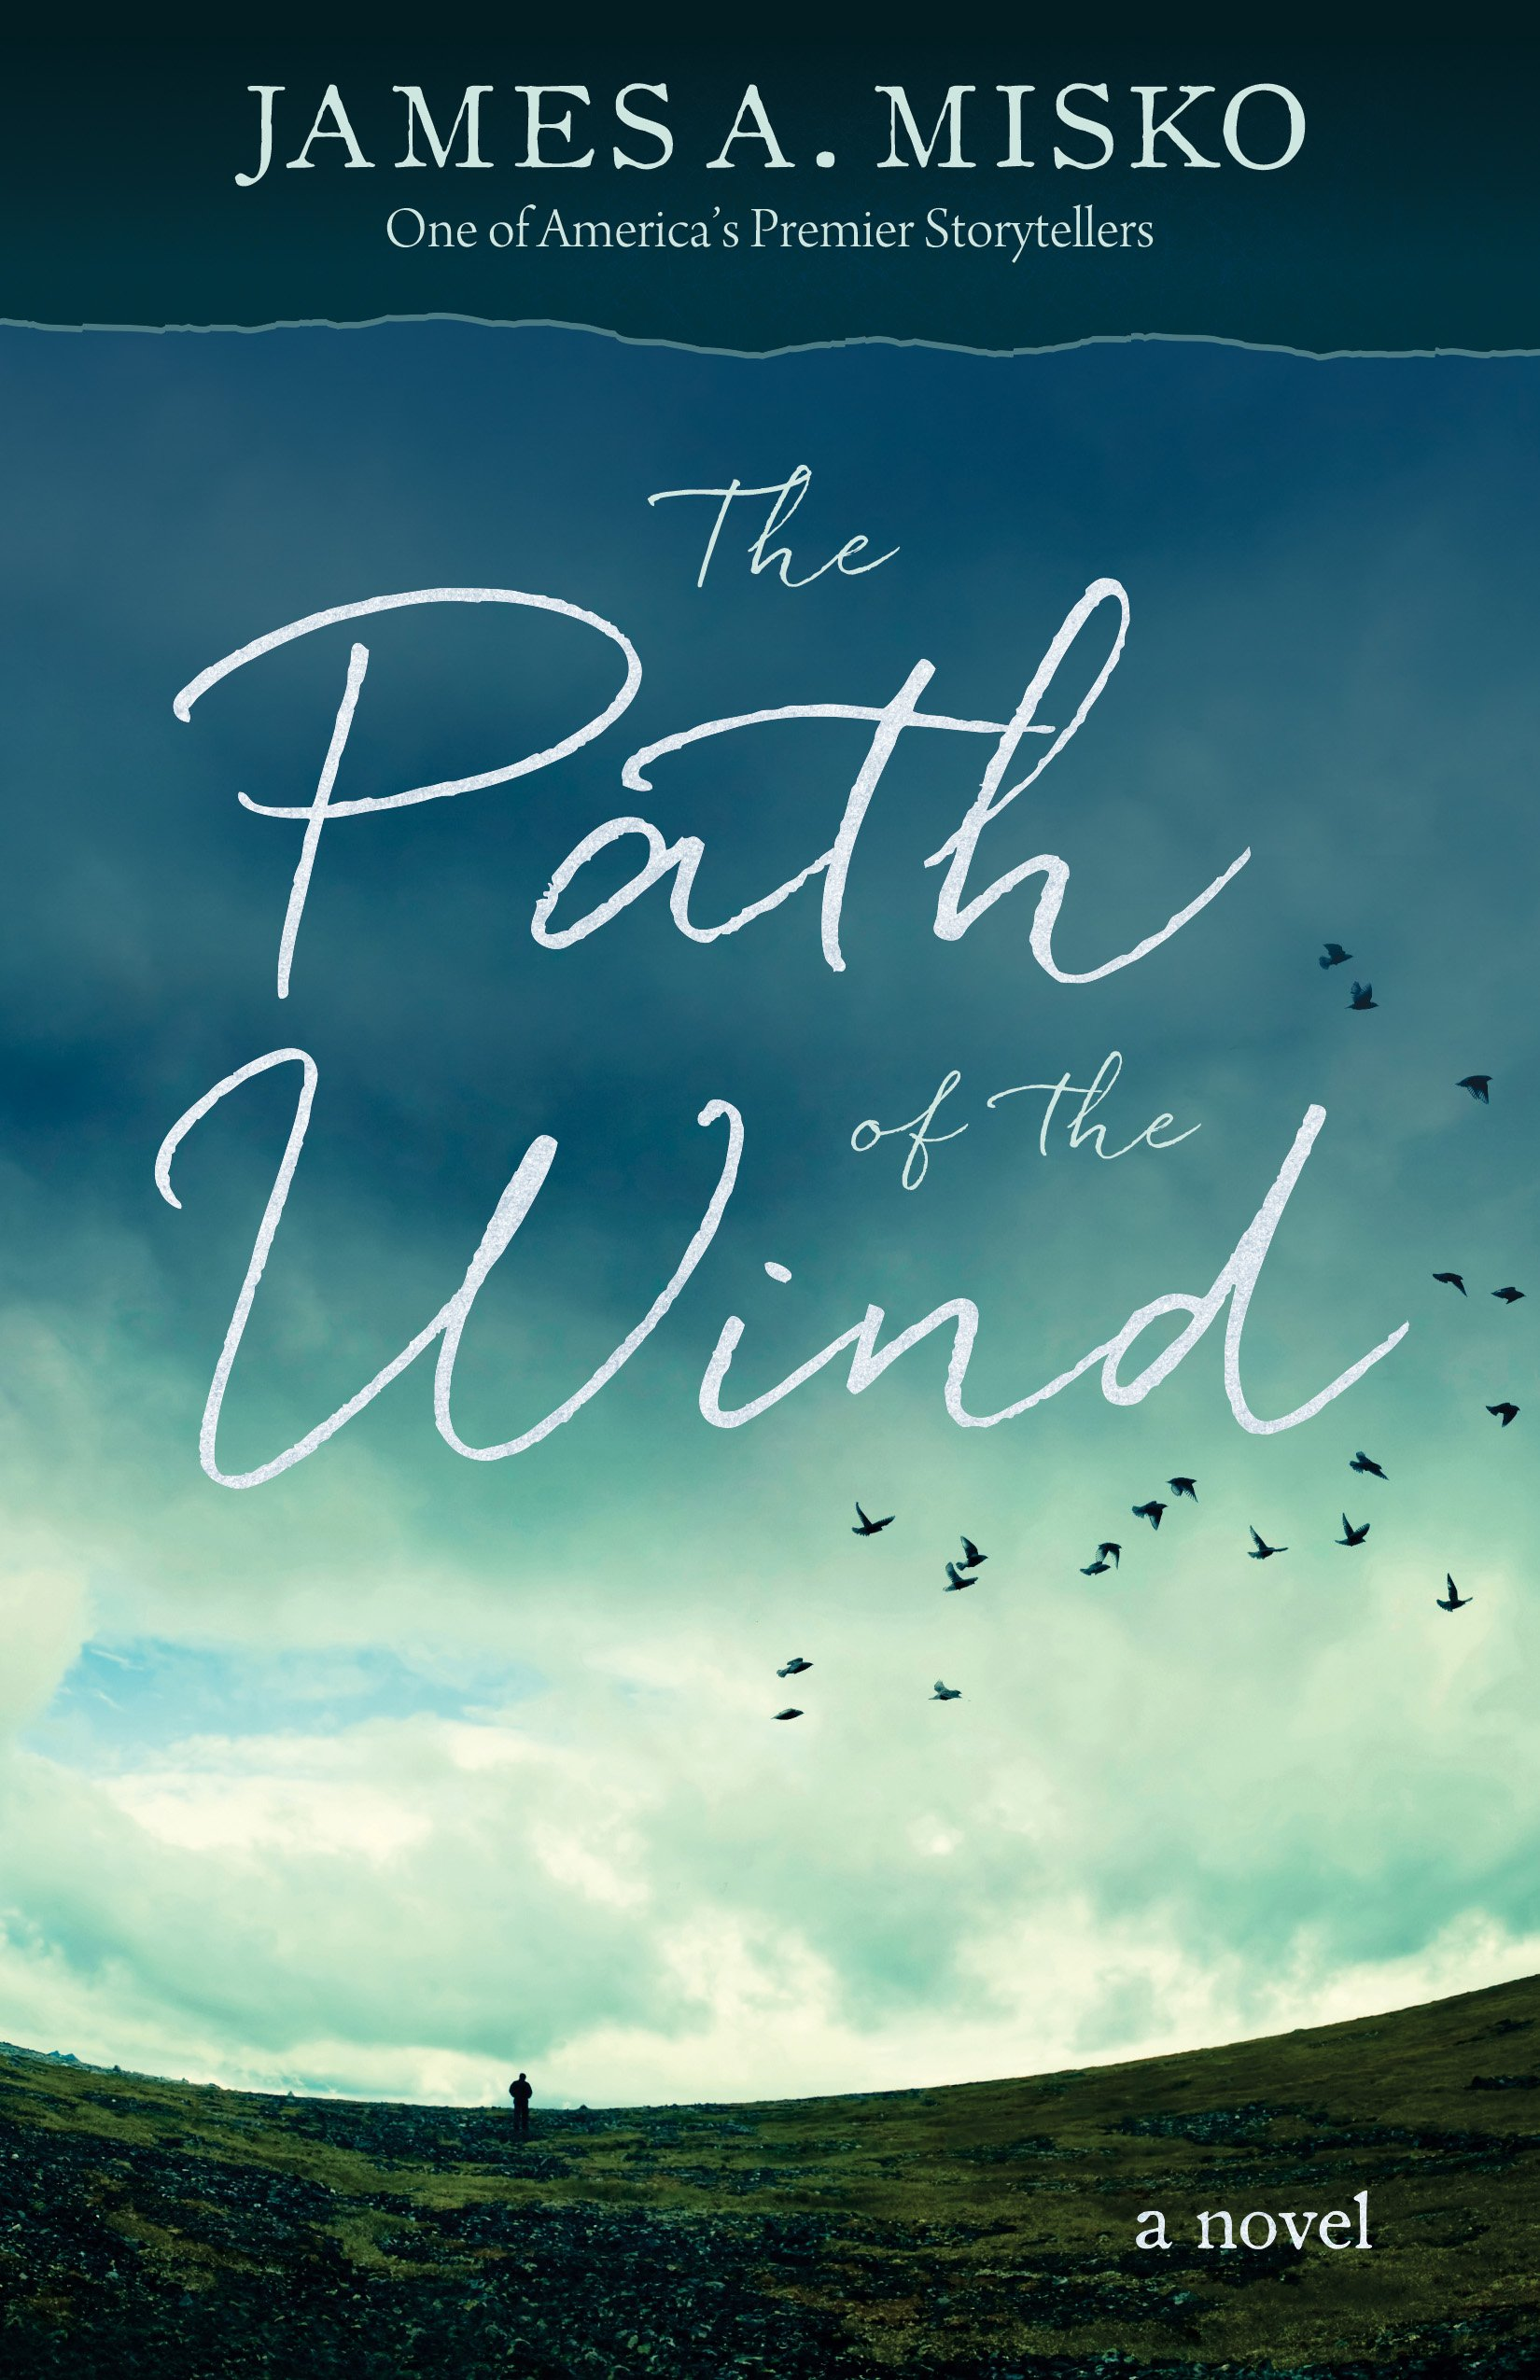 Image result for the path of wind jim misko